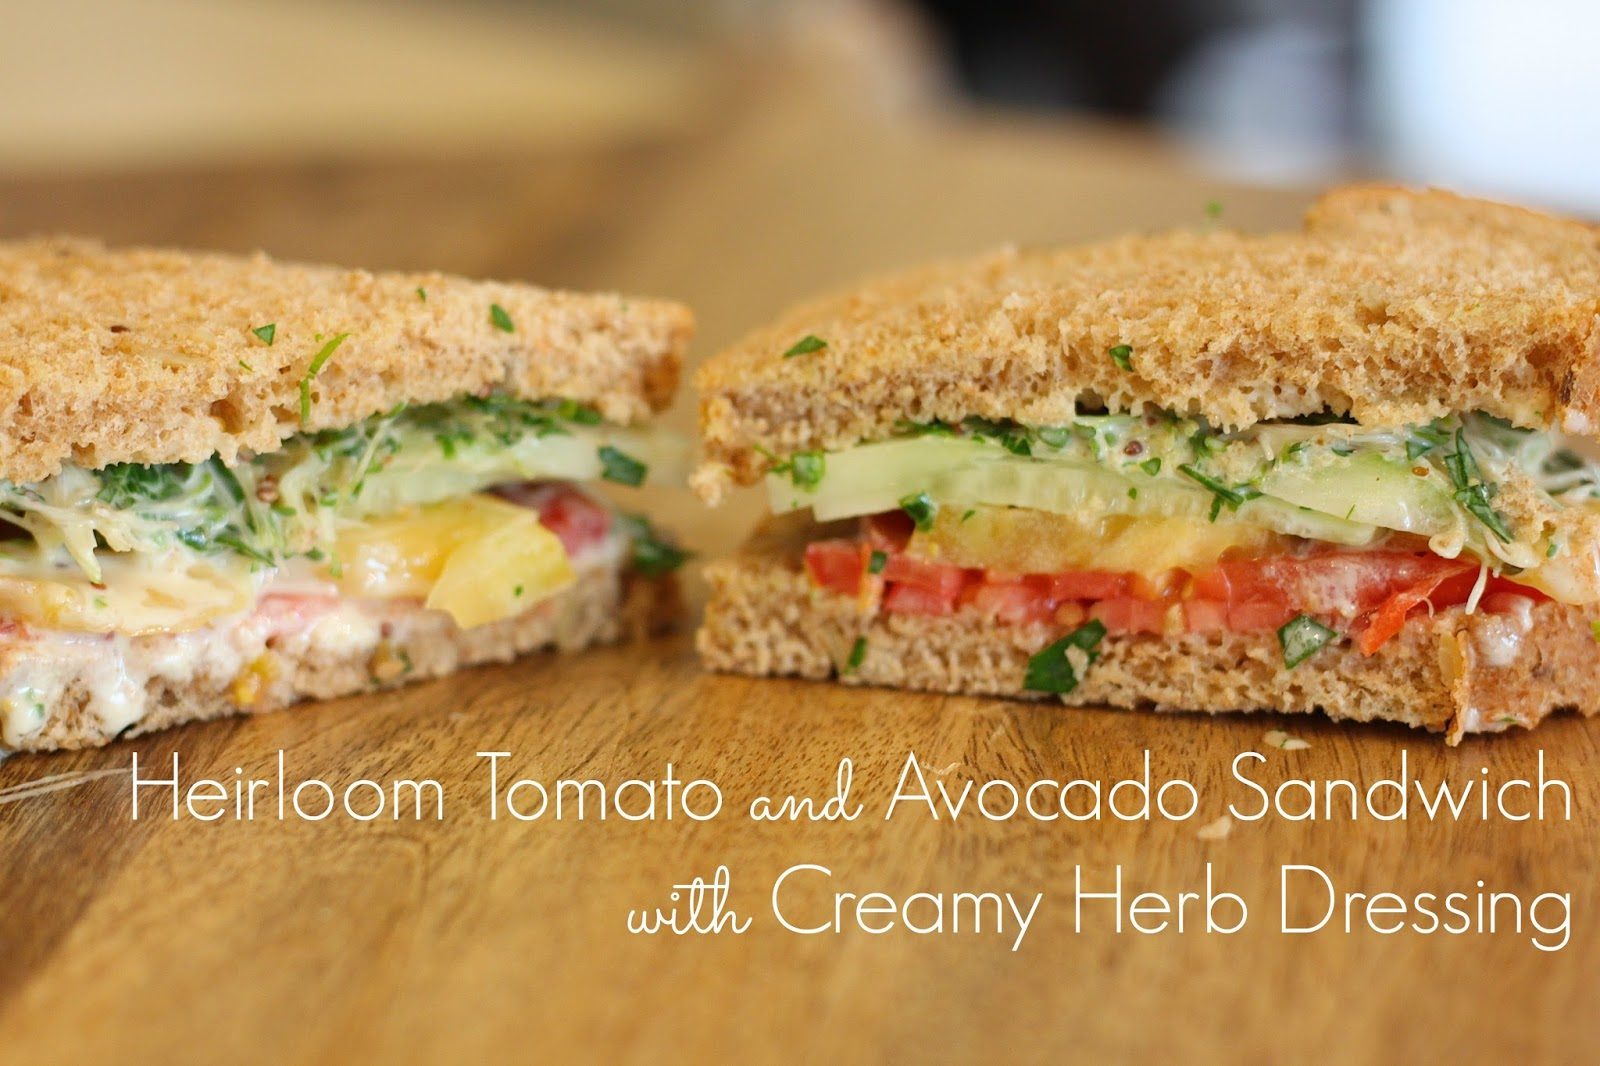 ... and Avocado Sandwich with Creamy Herb Dressing - Naturally Mindful